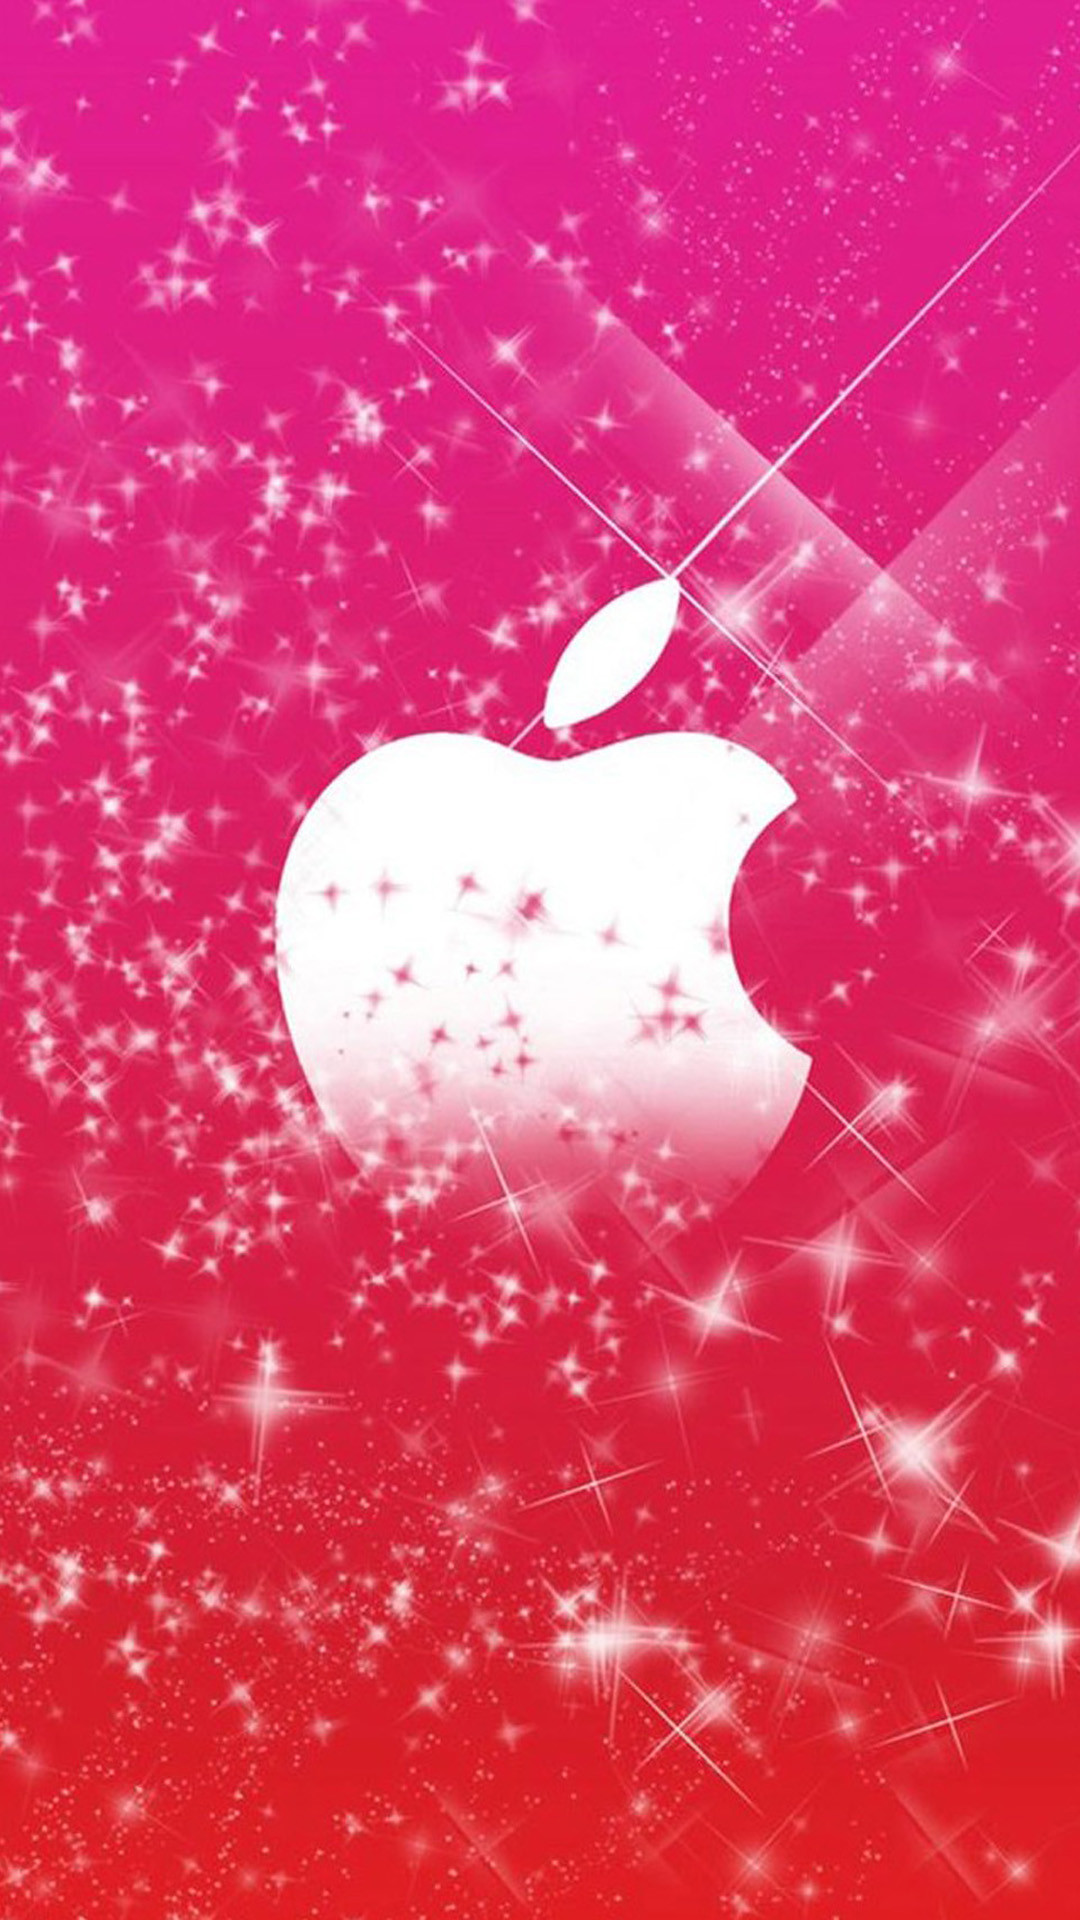 Apple Wallpapers For iPhone 6 Plus 394